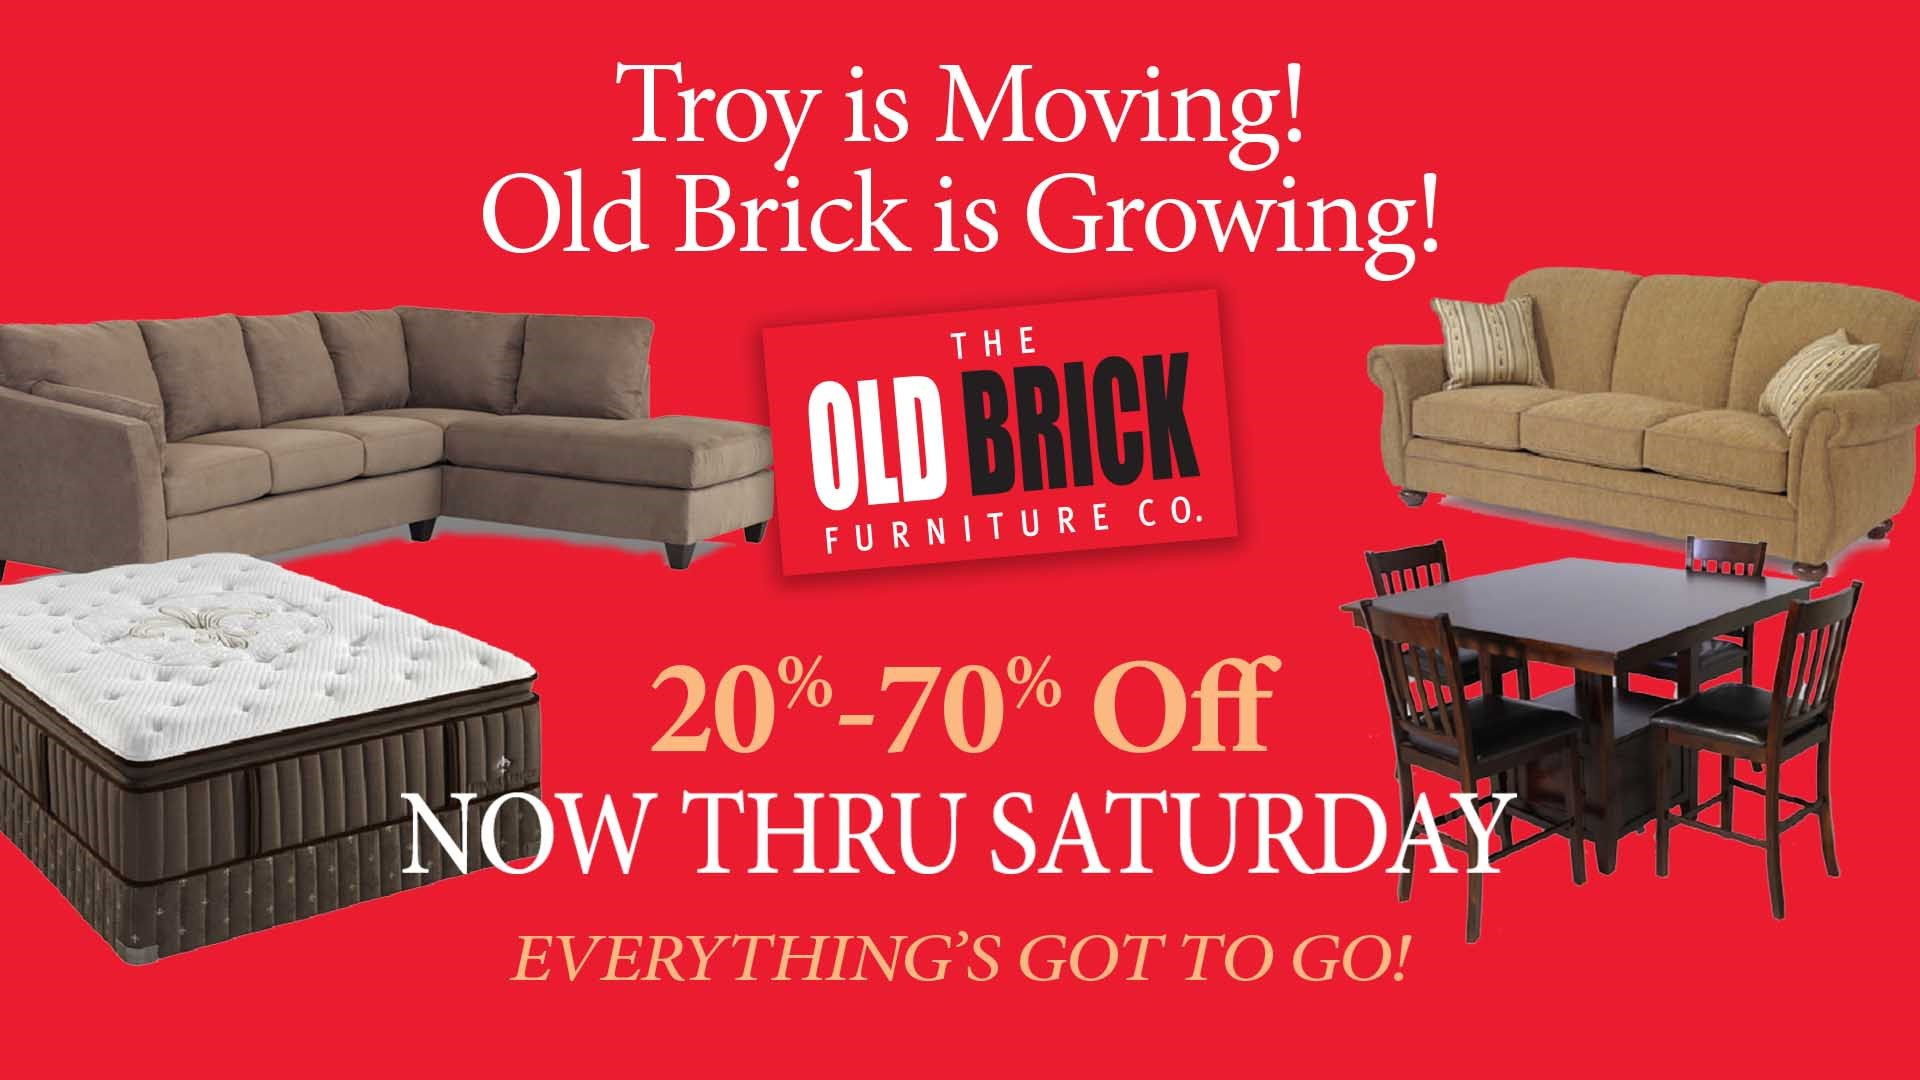 Troy is Moving!